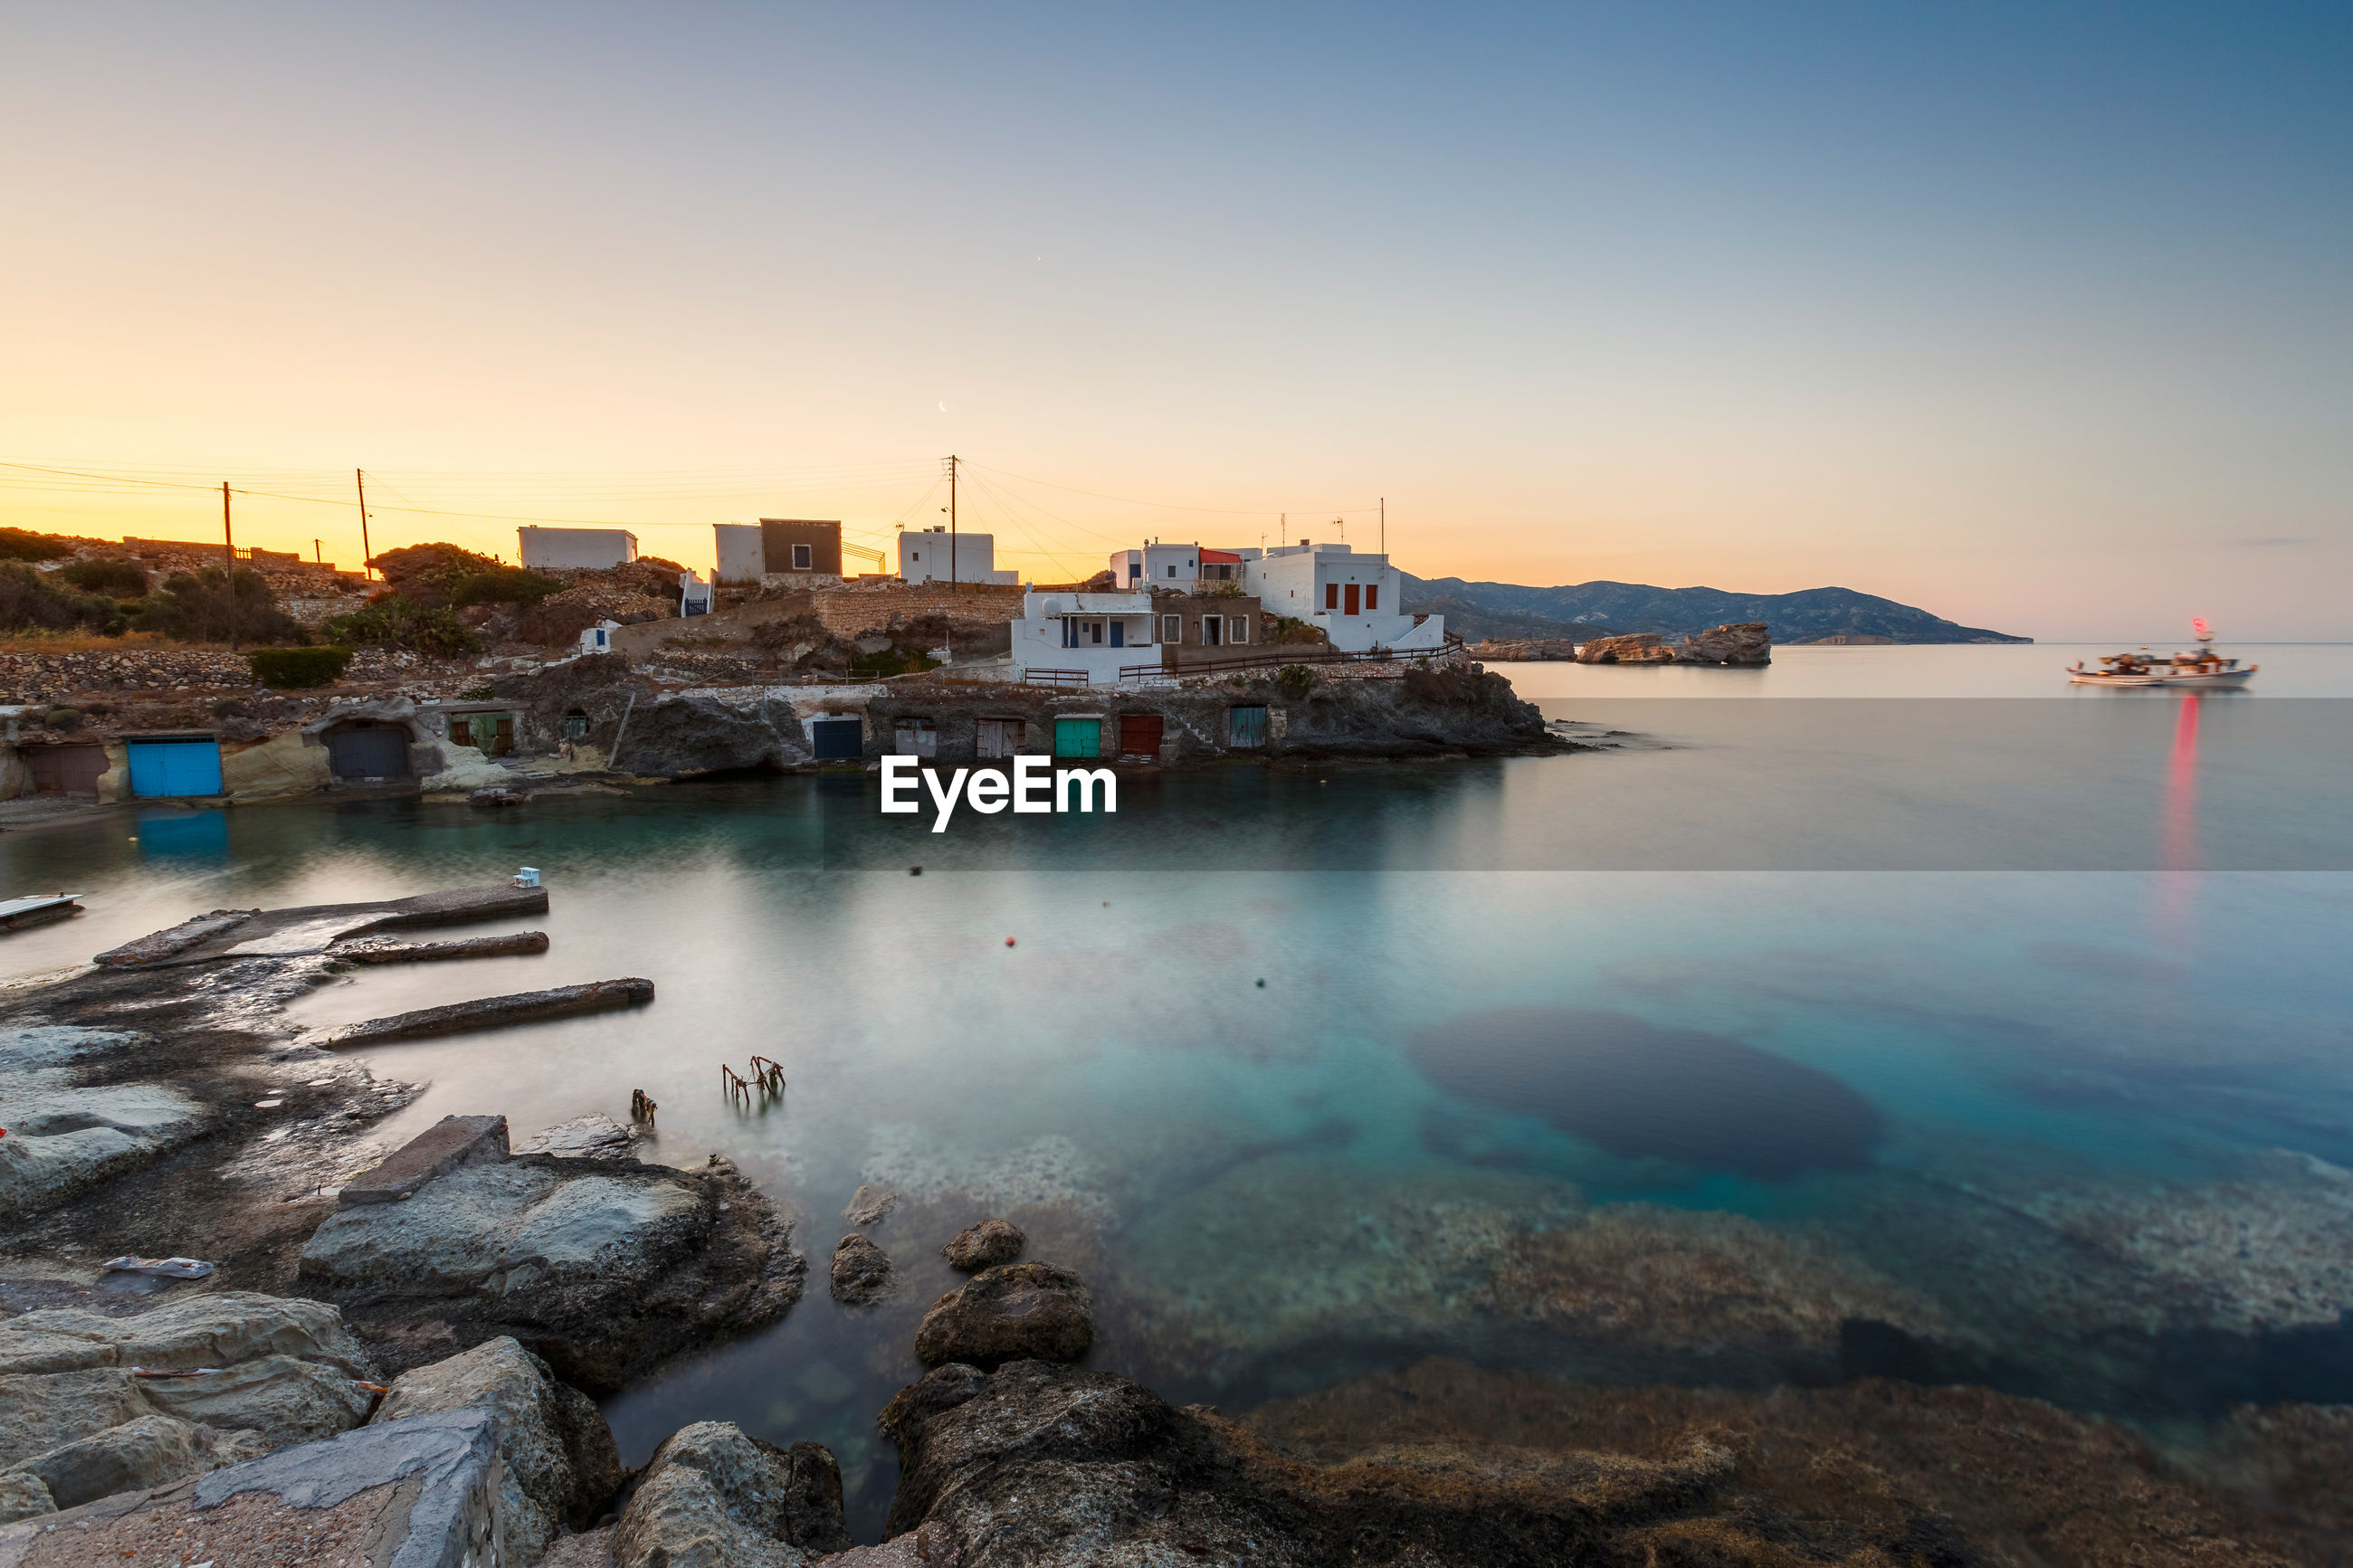 SCENIC VIEW OF SEA AND BUILDINGS AGAINST SKY